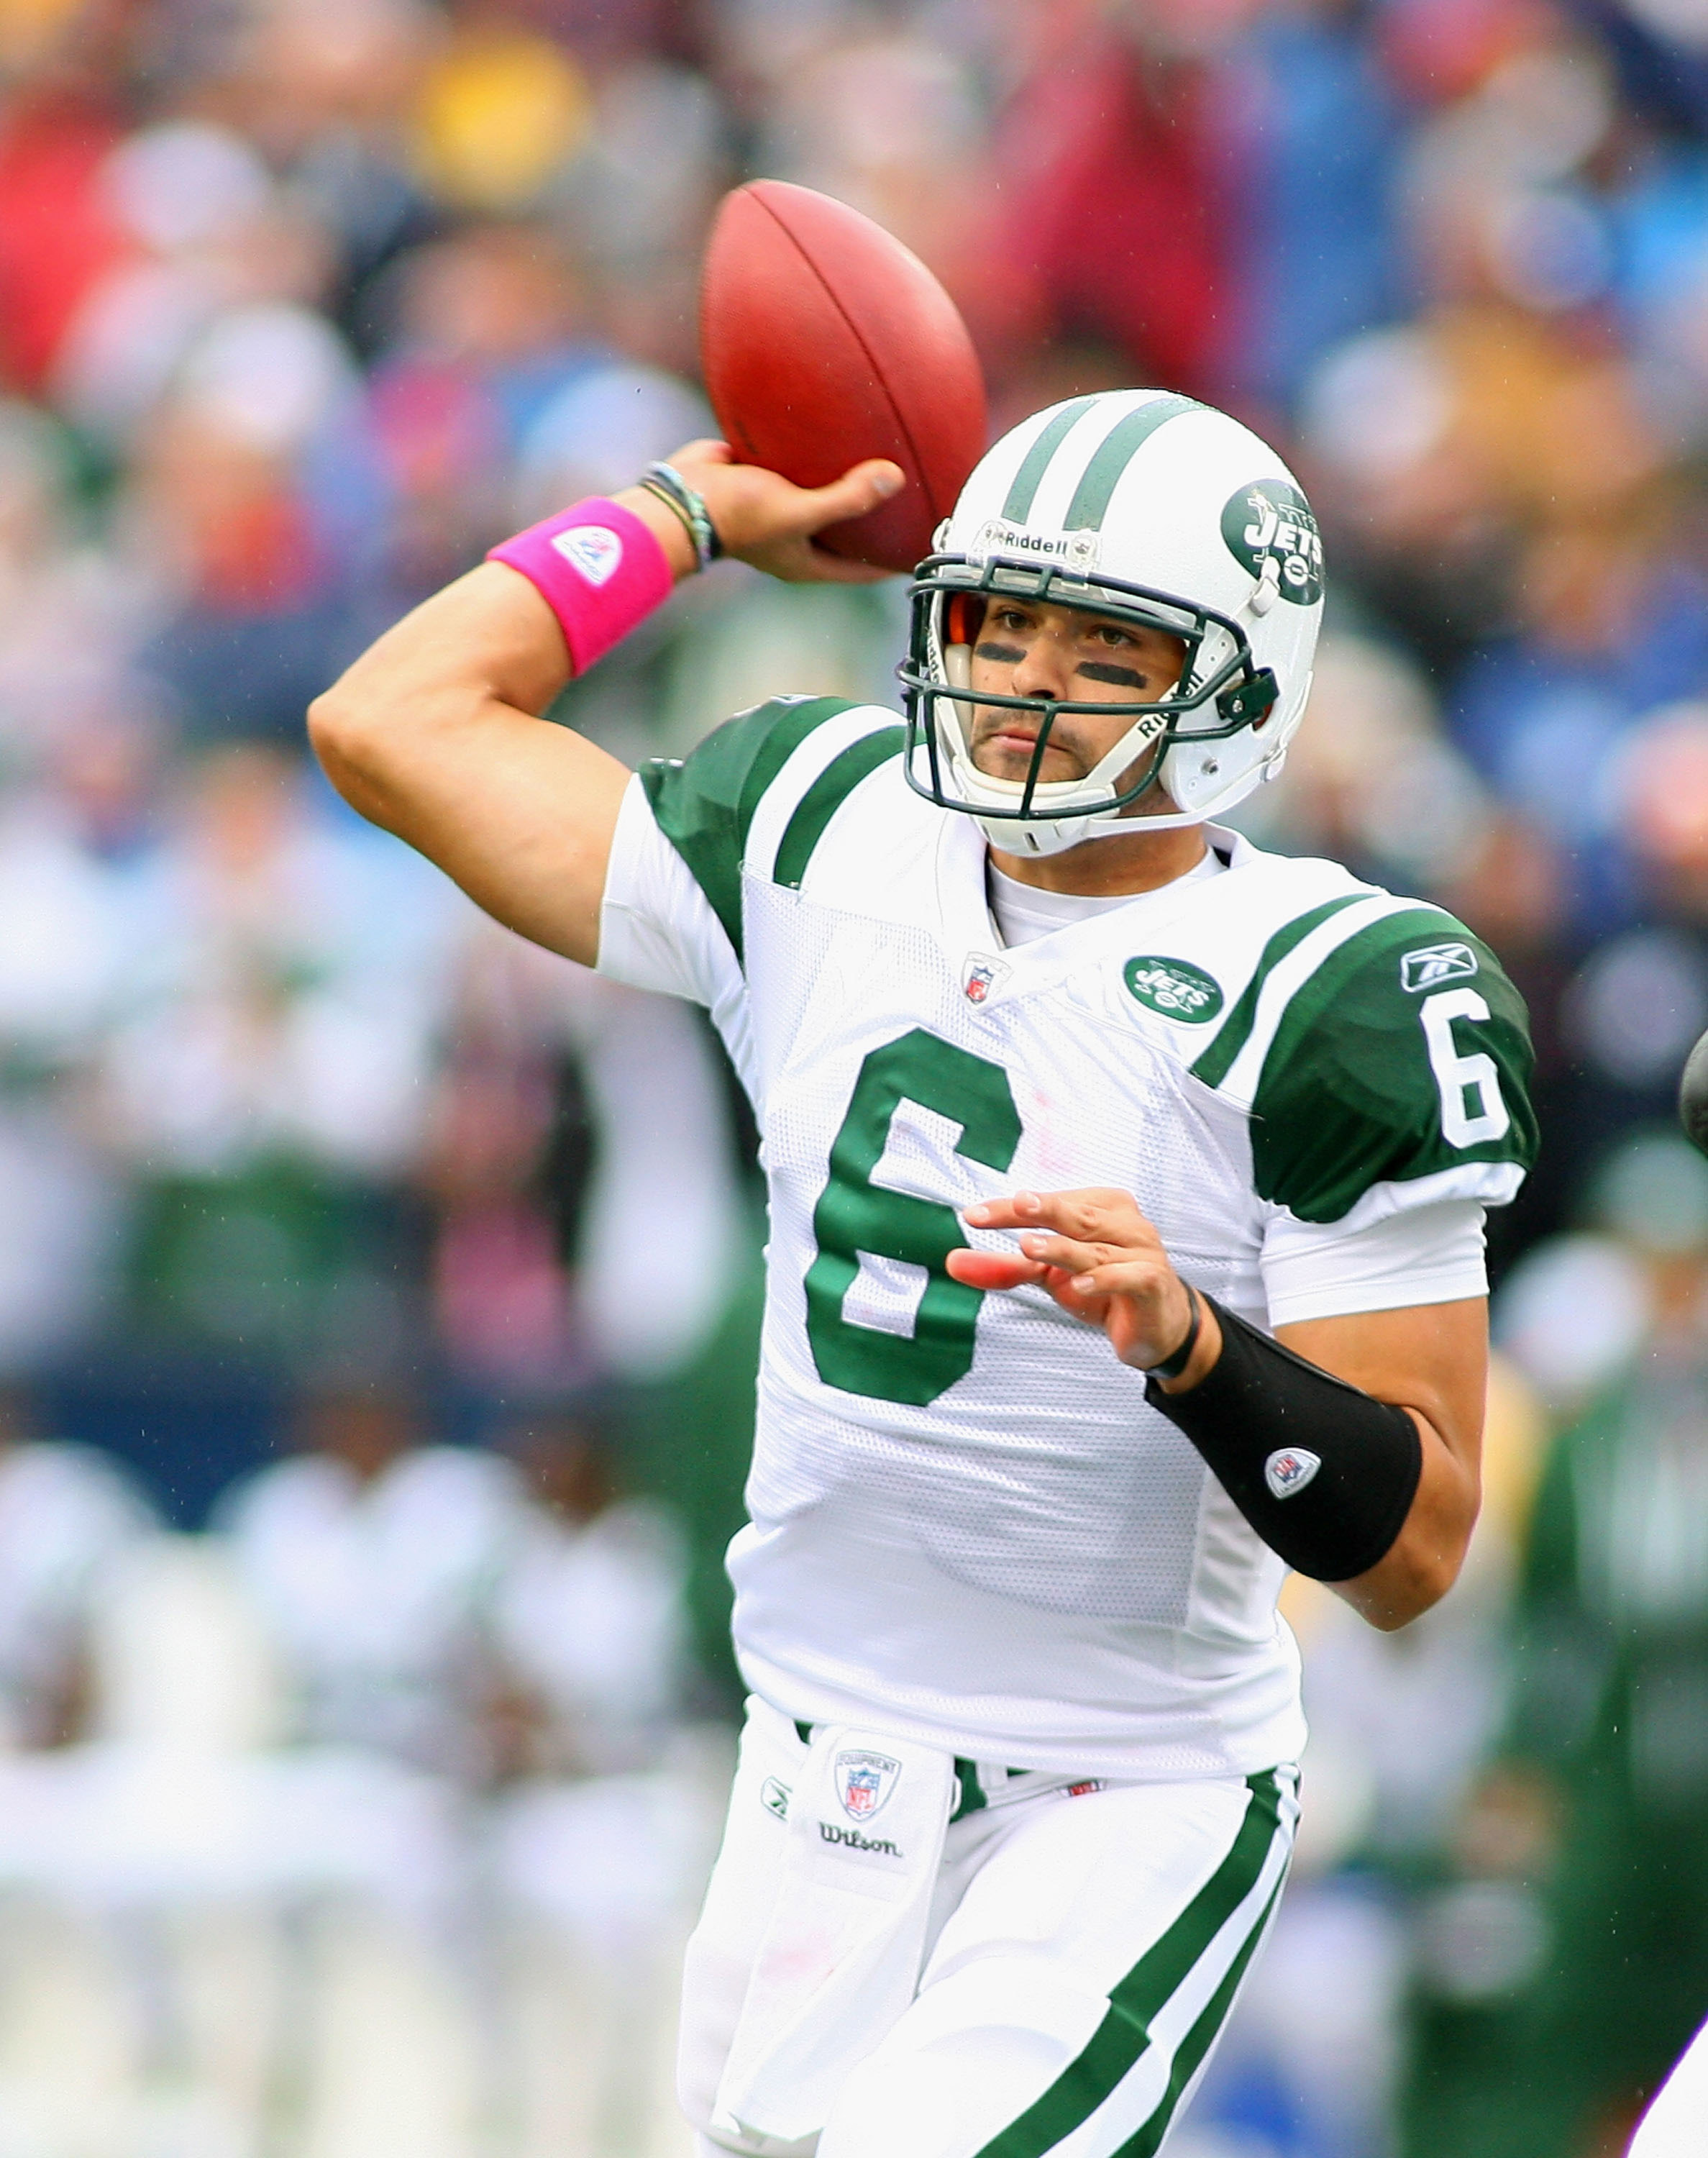 ORCHARD PARK, NY - OCTOBER 03:  Mark Sanchez #6 of the New York Jets throws a pass against the Buffalo Bills at Ralph Wilson Stadium on October 3, 2010 in Orchard Park, New York. The Jets won 38-14.  (Photo by Rick Stewart/Getty Images)